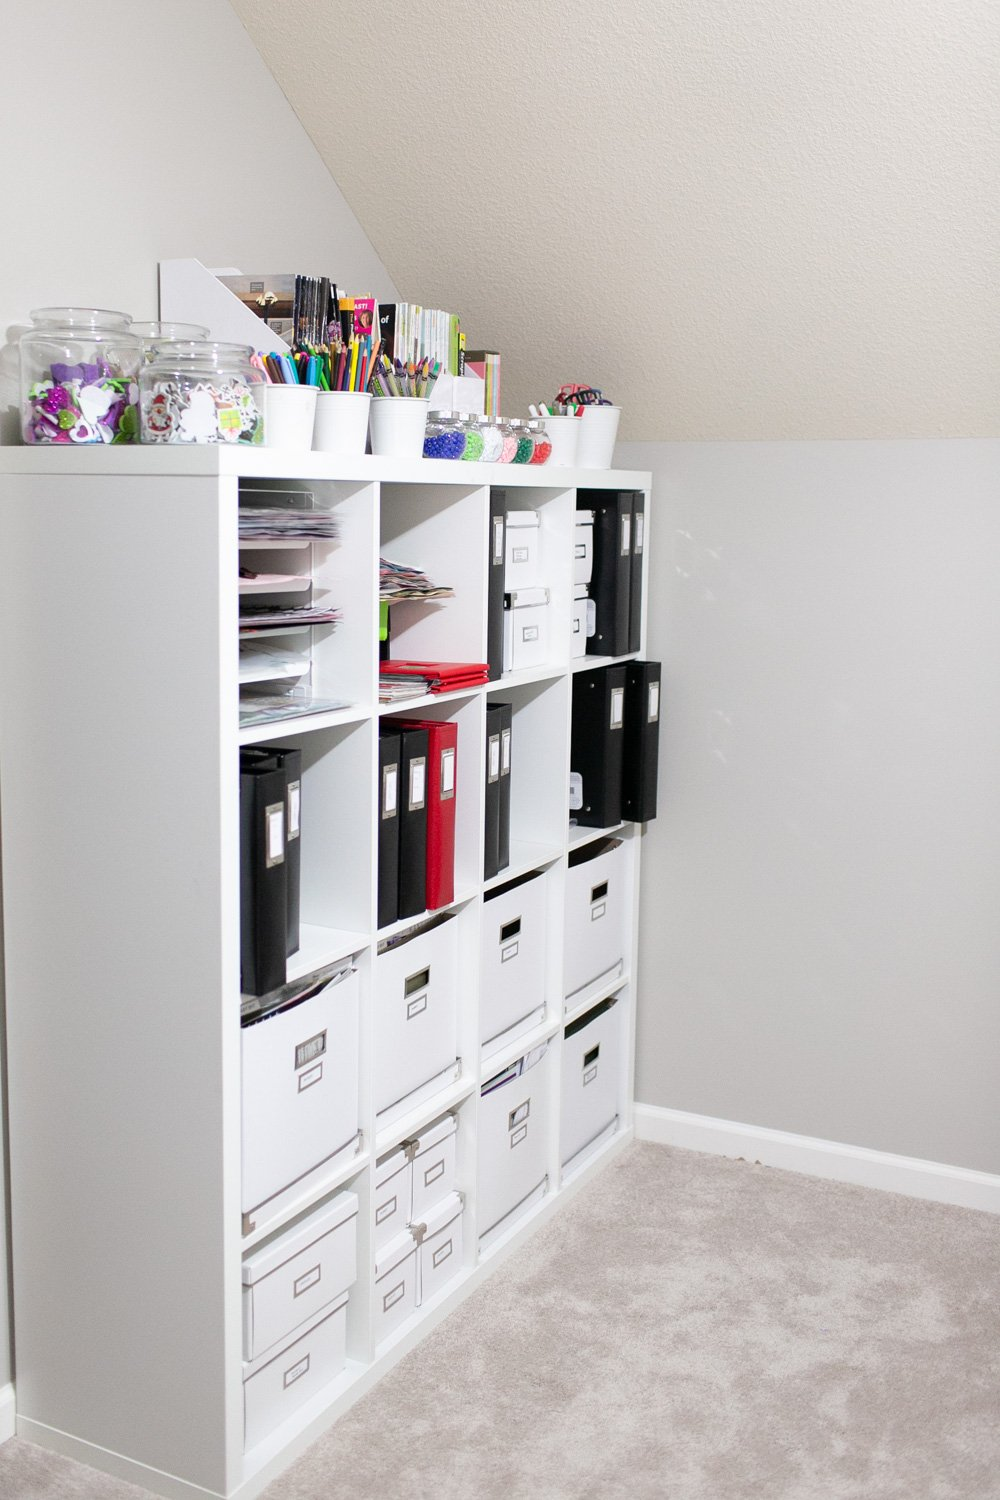 Benjamin Moore Revere Pewter with White Carpet and White Trim